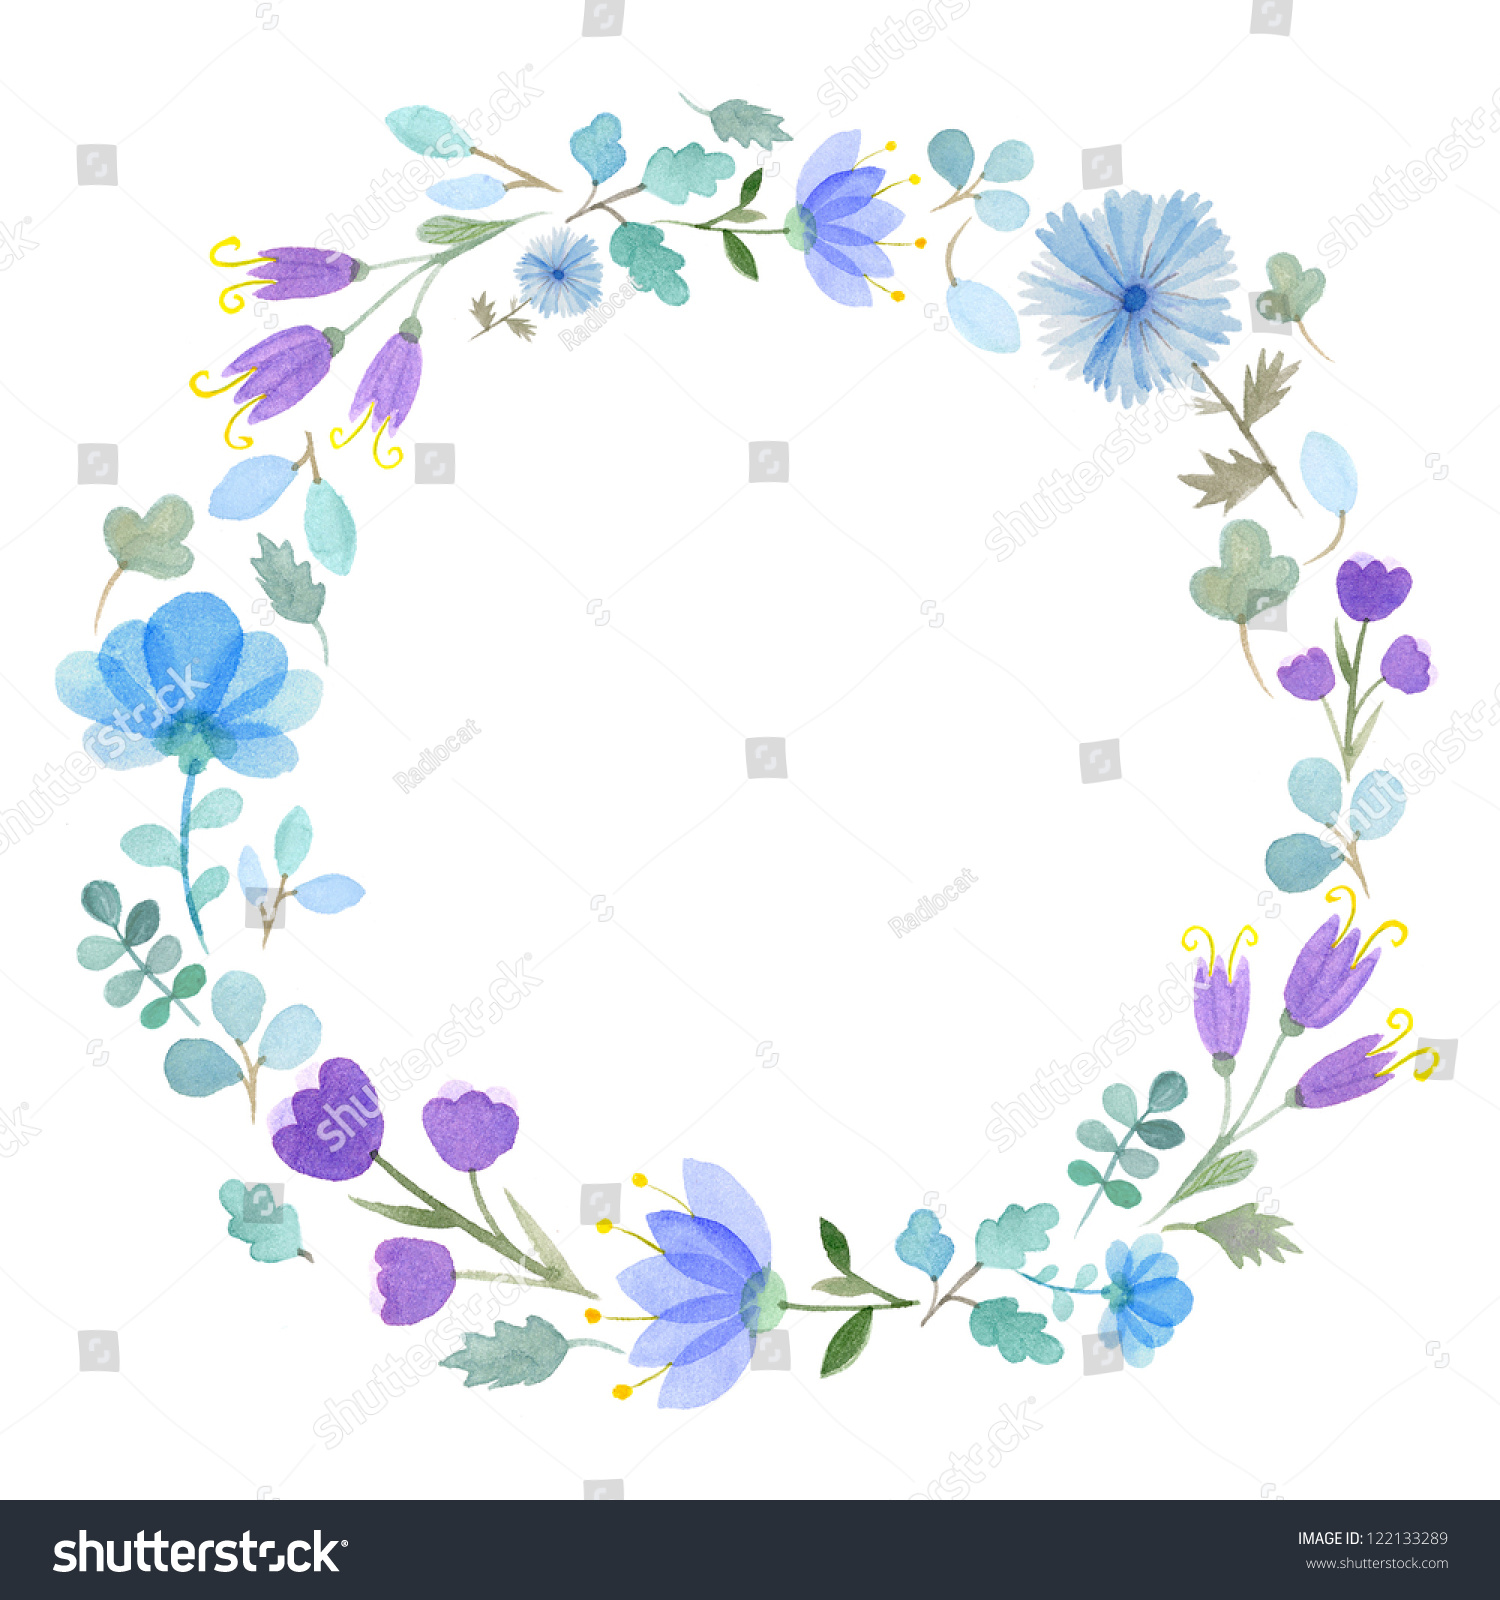 Watercolor flowers frame template 1 stock illustration for Watercolor painting templates free